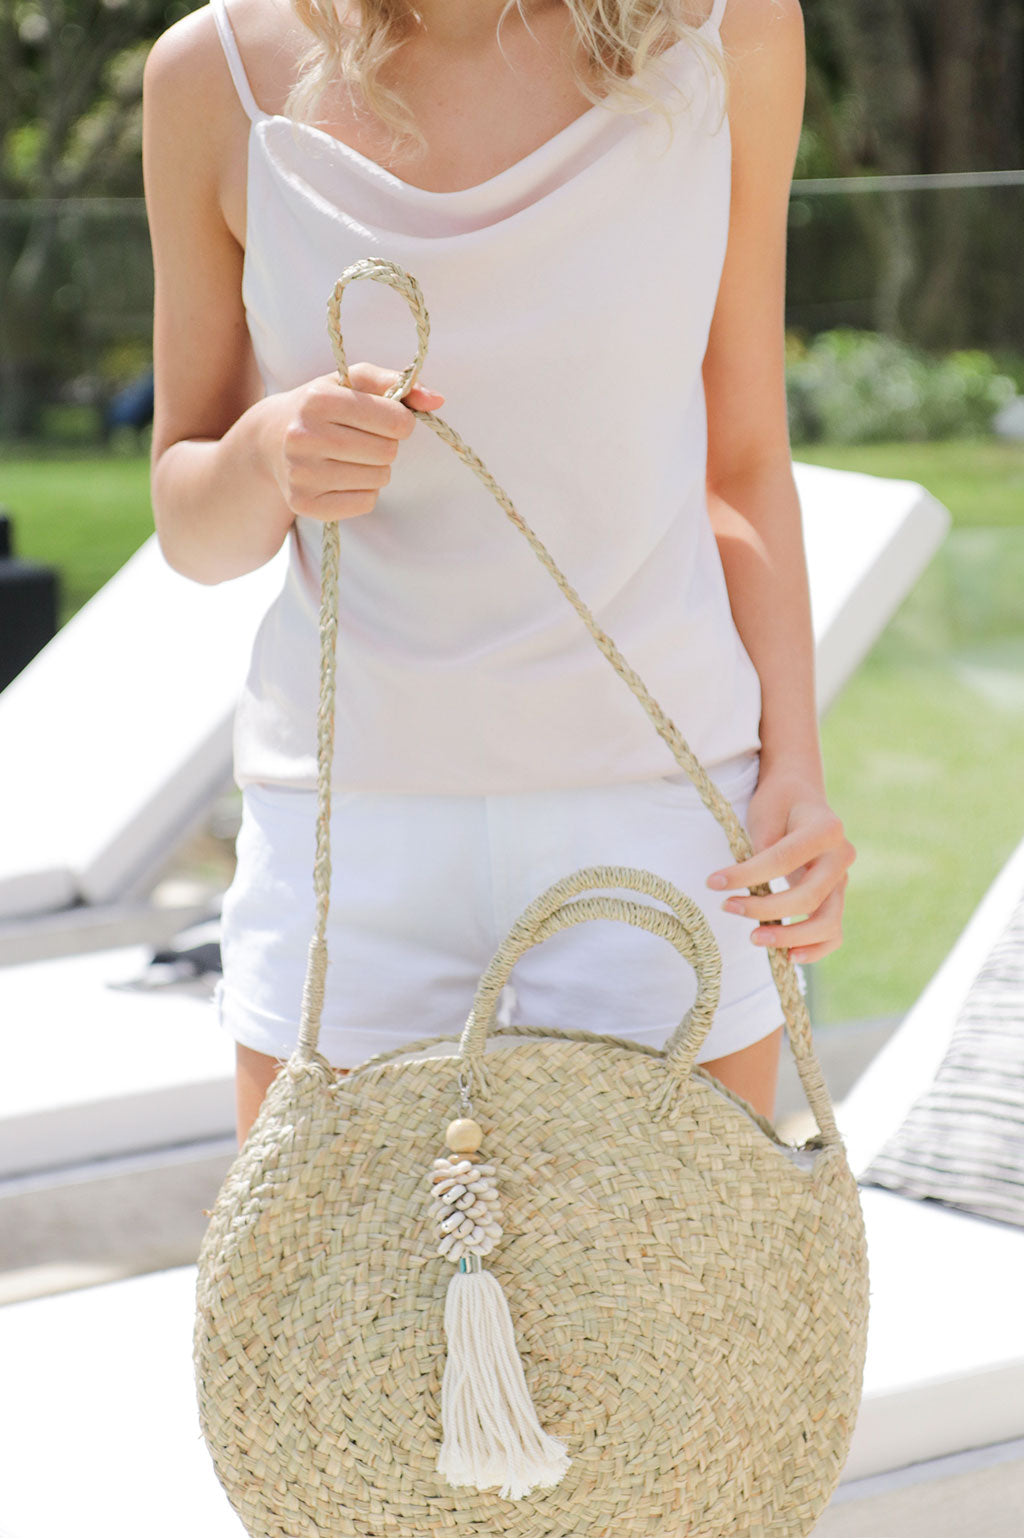 Strapping Beach Bag White Shell Tassel